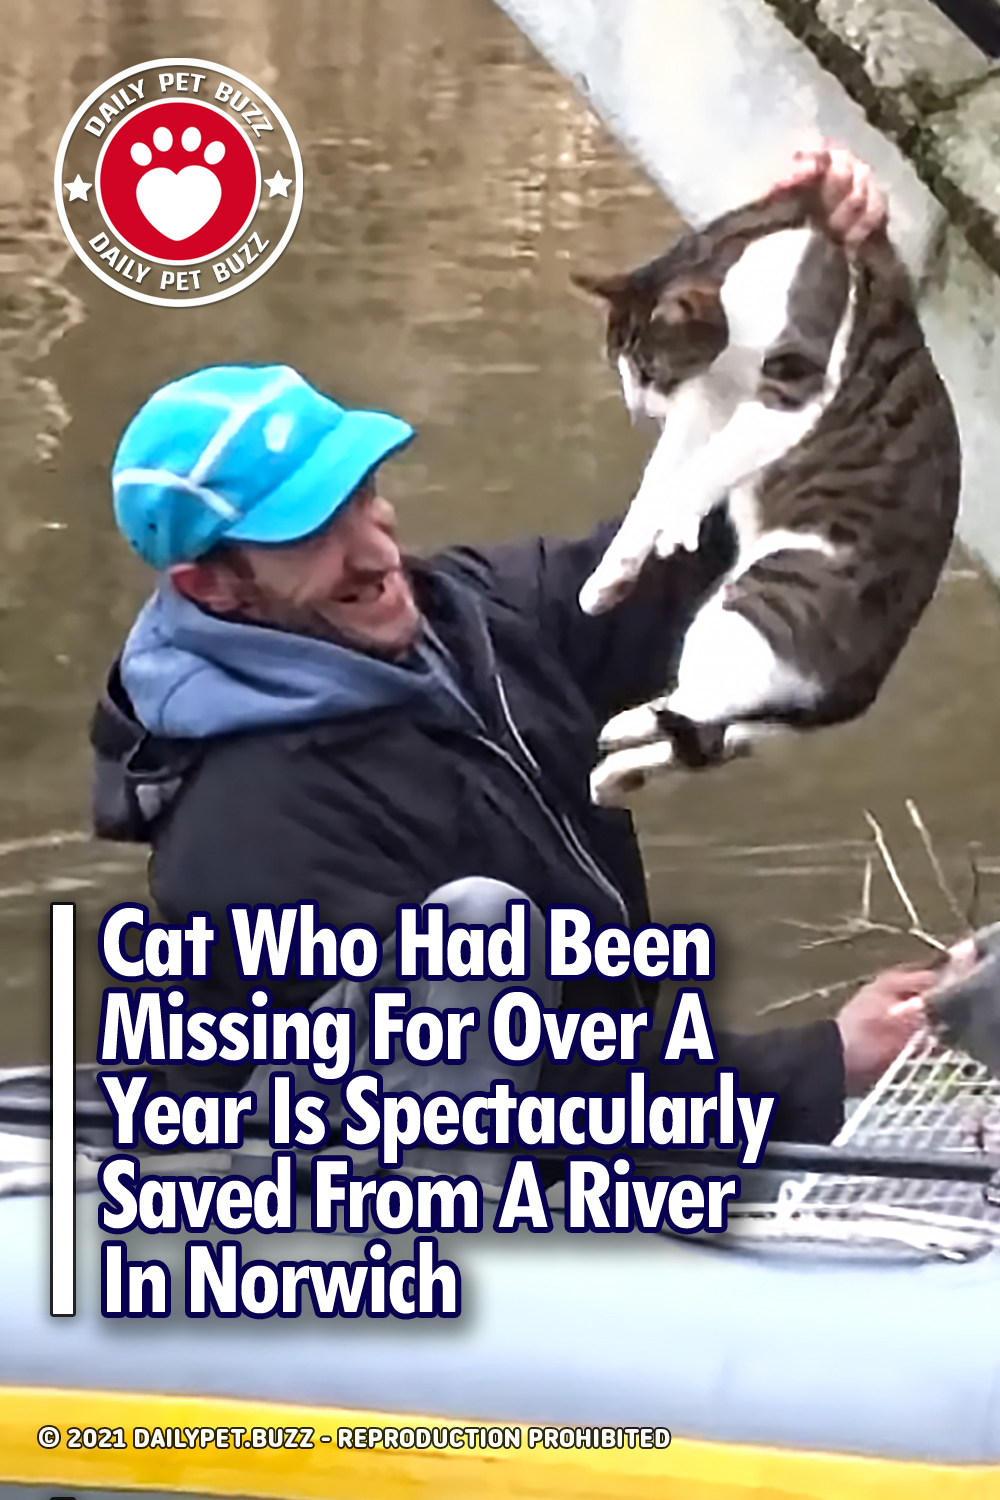 Cat Who Had Been Missing For Over A Year Is Spectacularly Saved From A River In Norwich